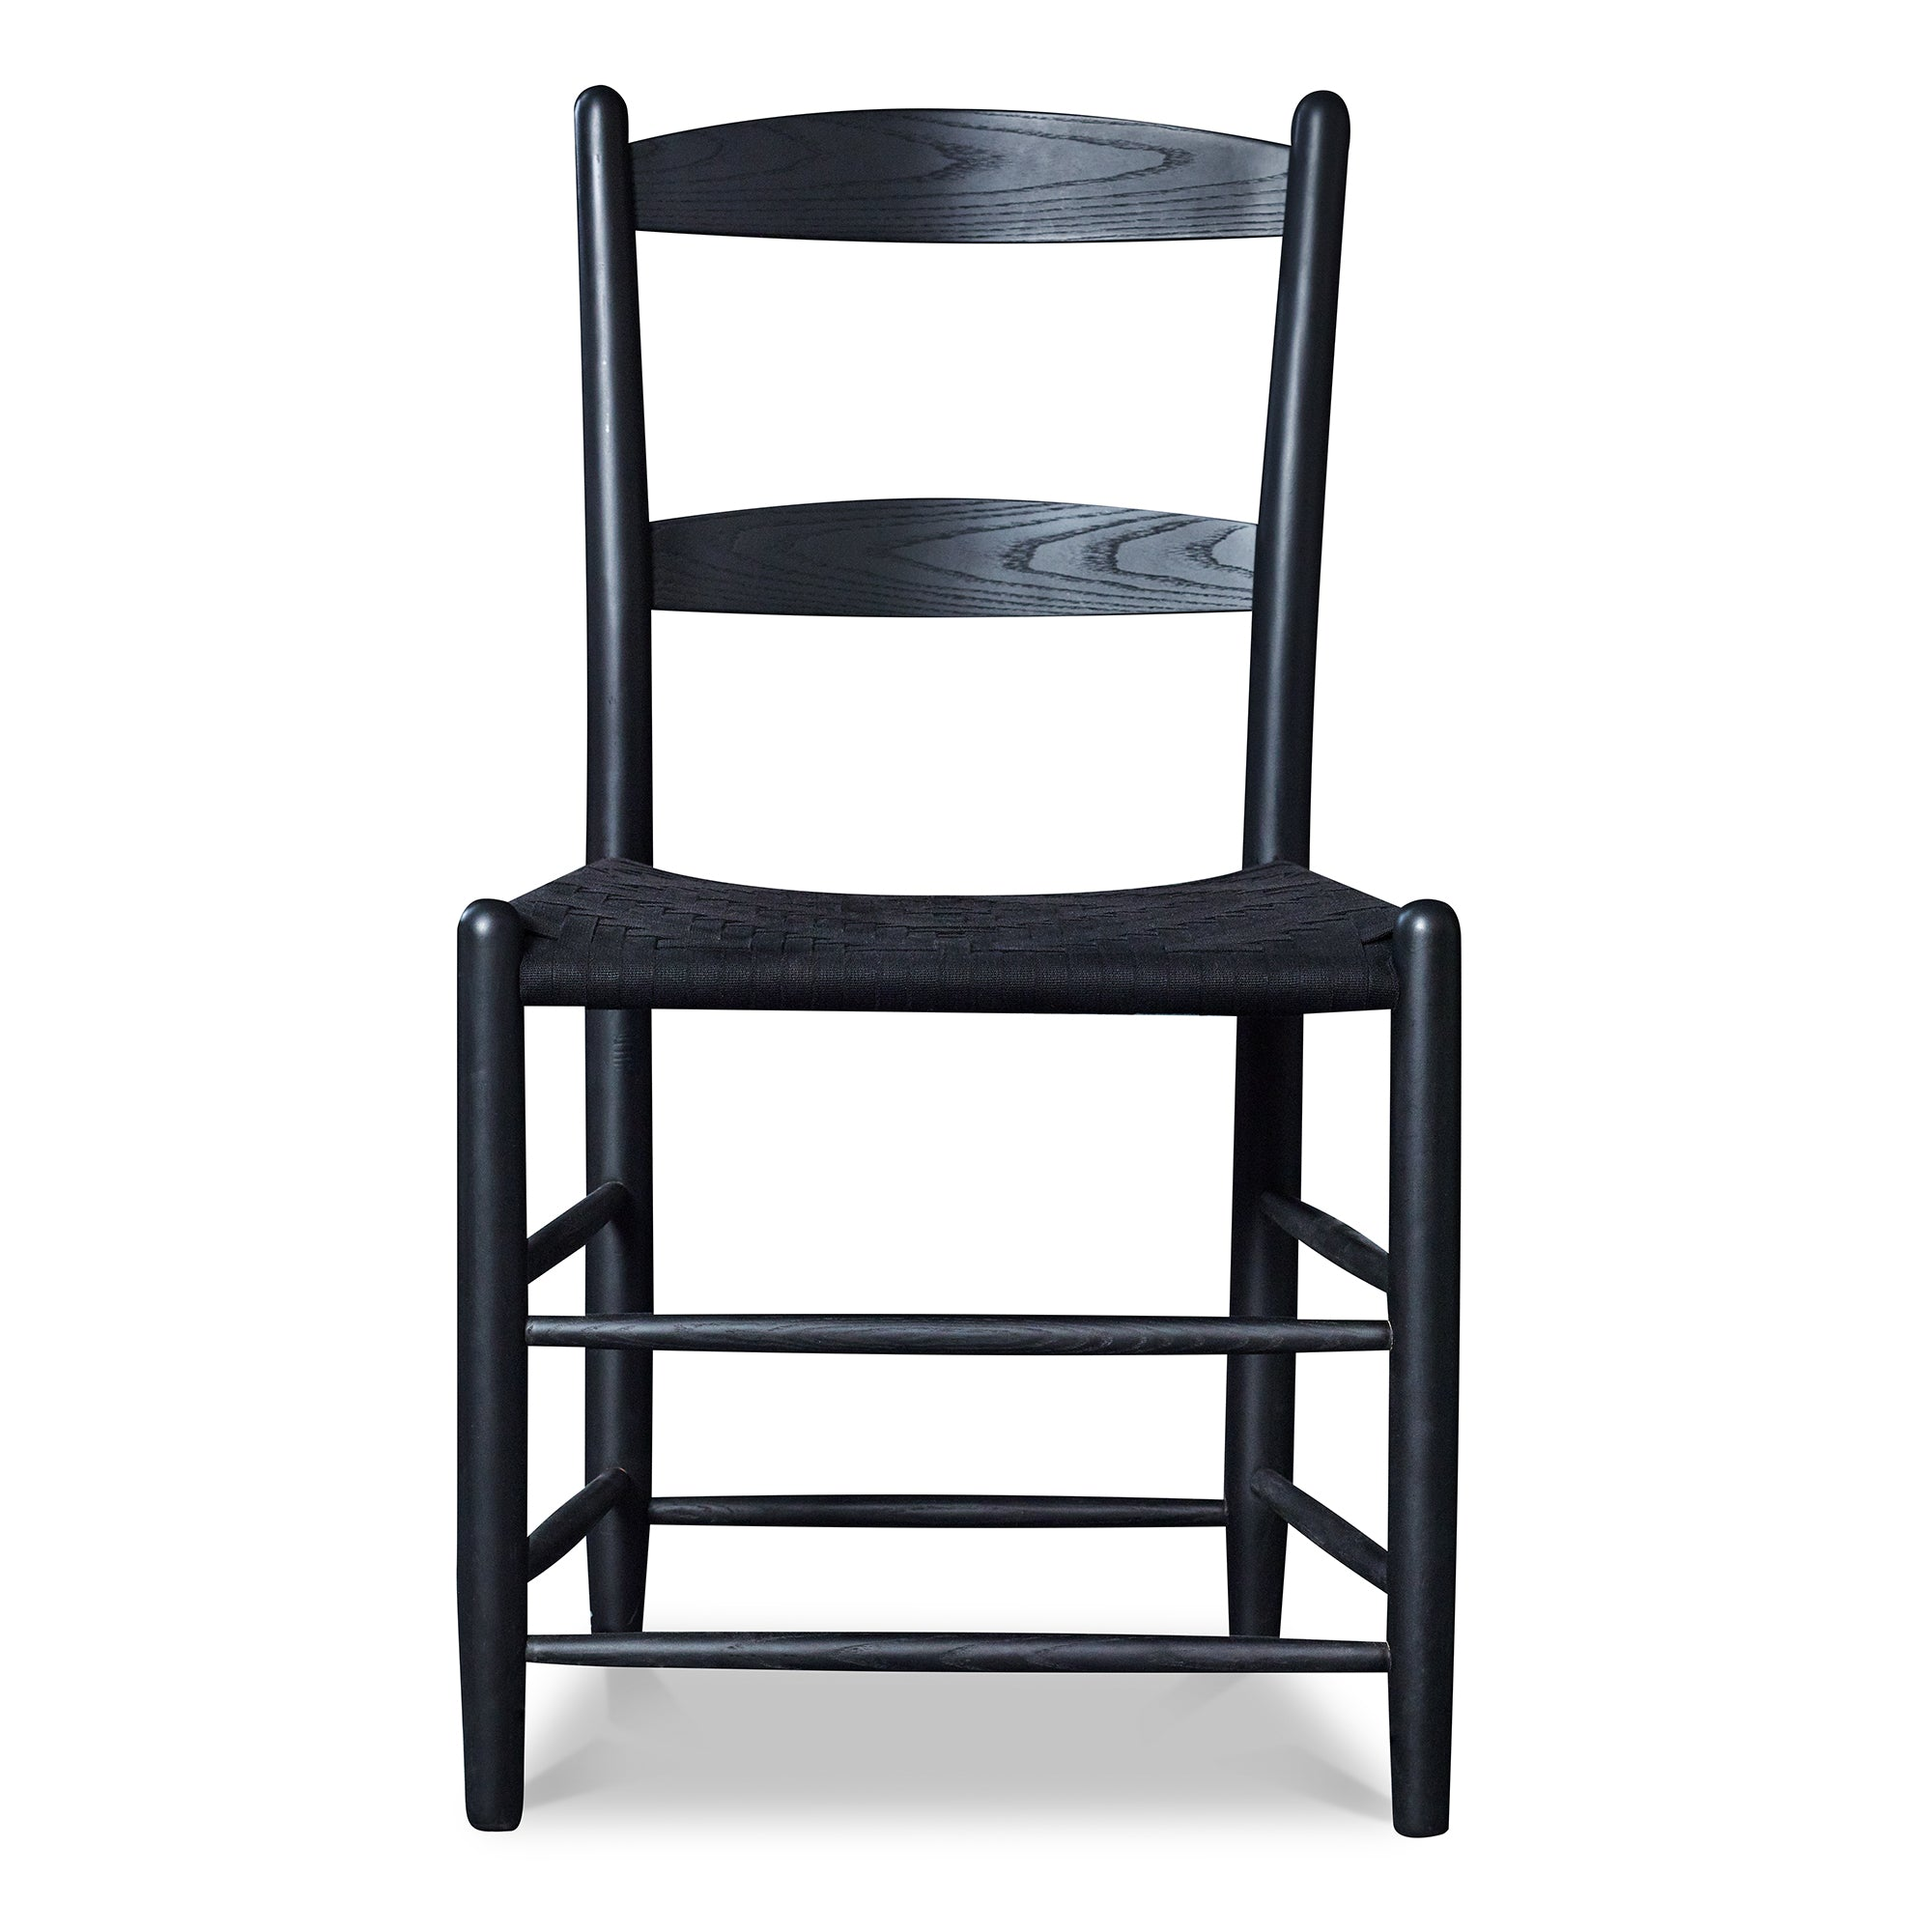 Front View of classic Shaker style dining chair with two slat ladder back, in black with black woven seat tape